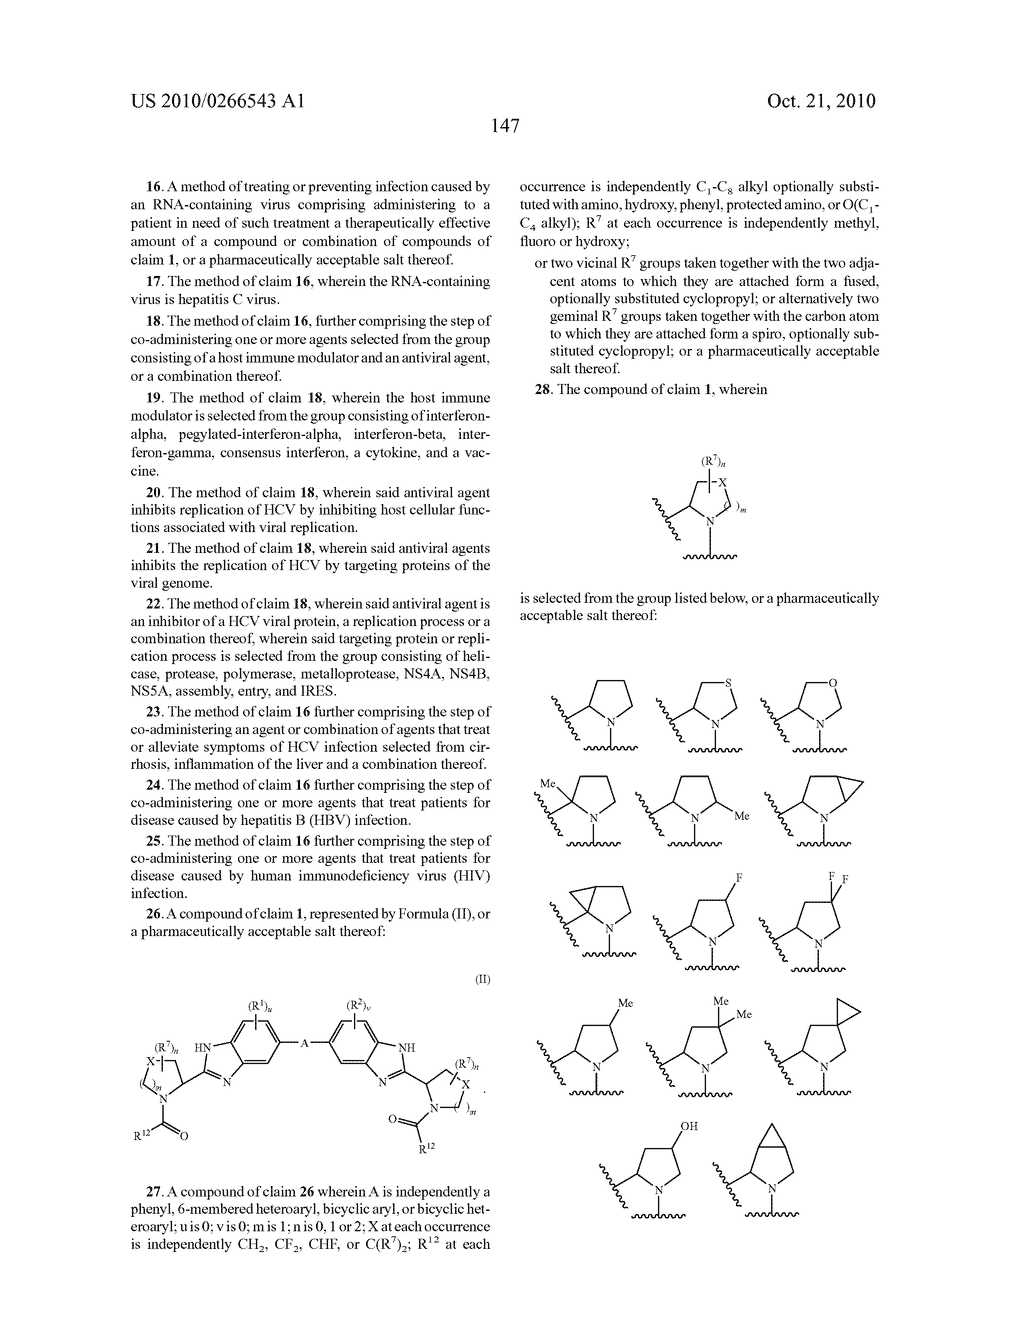 LINKED DIBENZIMIDAZOLE ANTIVIRALS - diagram, schematic, and image 150